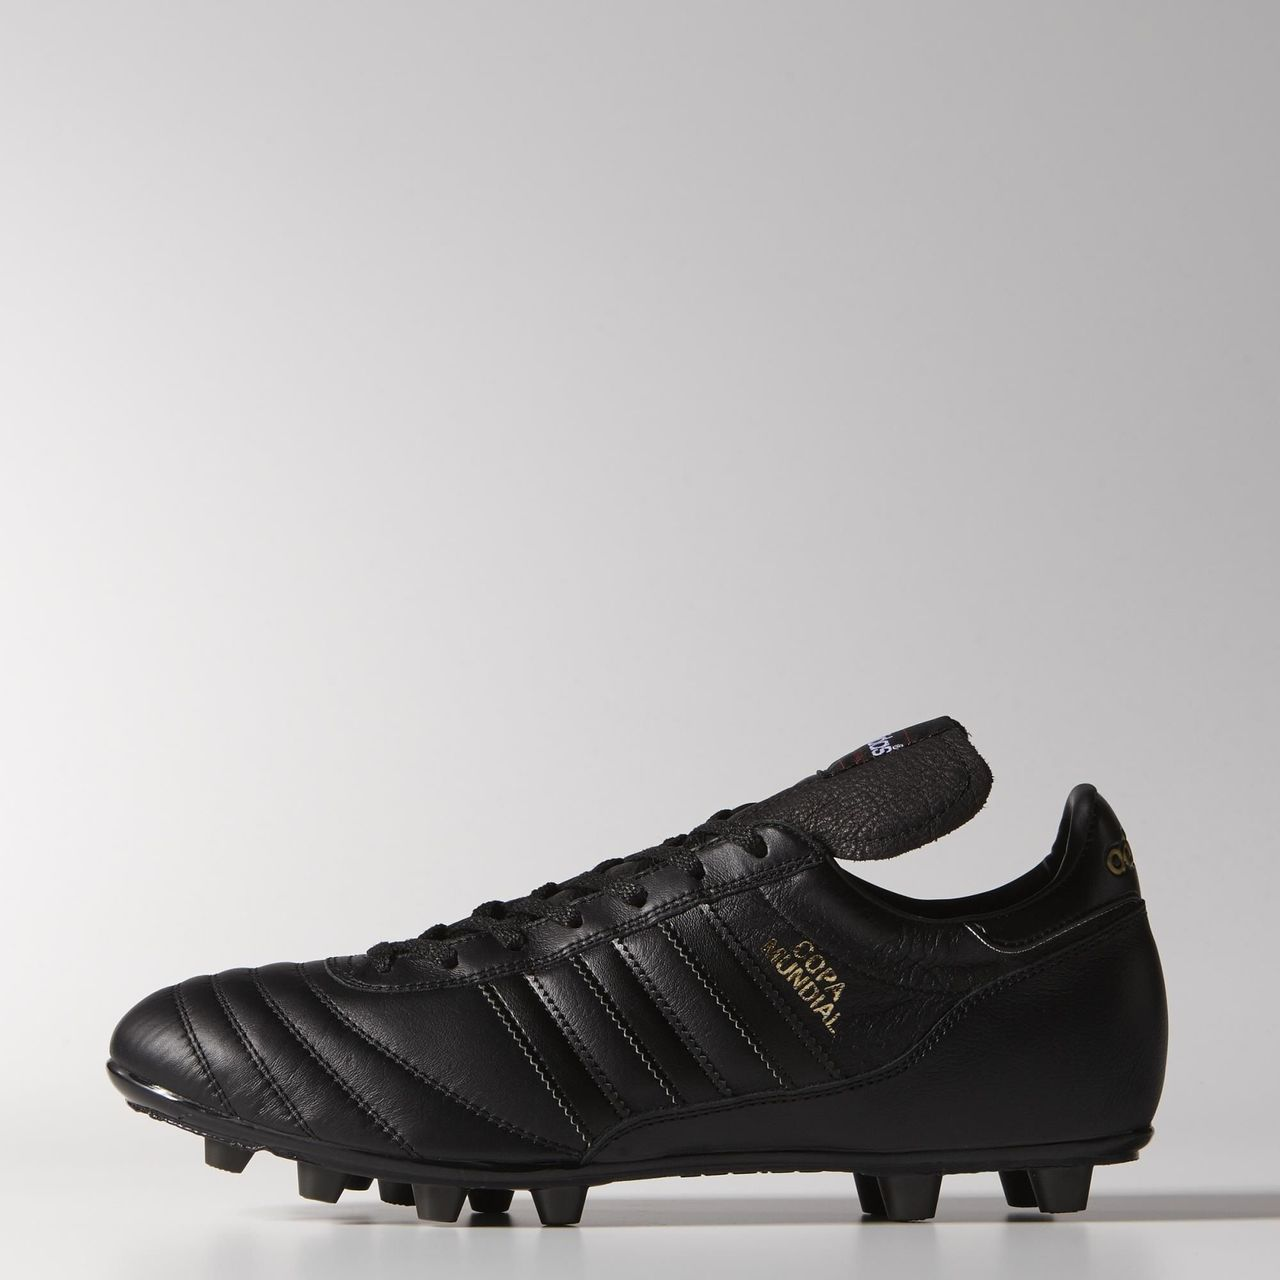 click to enlarge image adidas copa mundial football boots c.